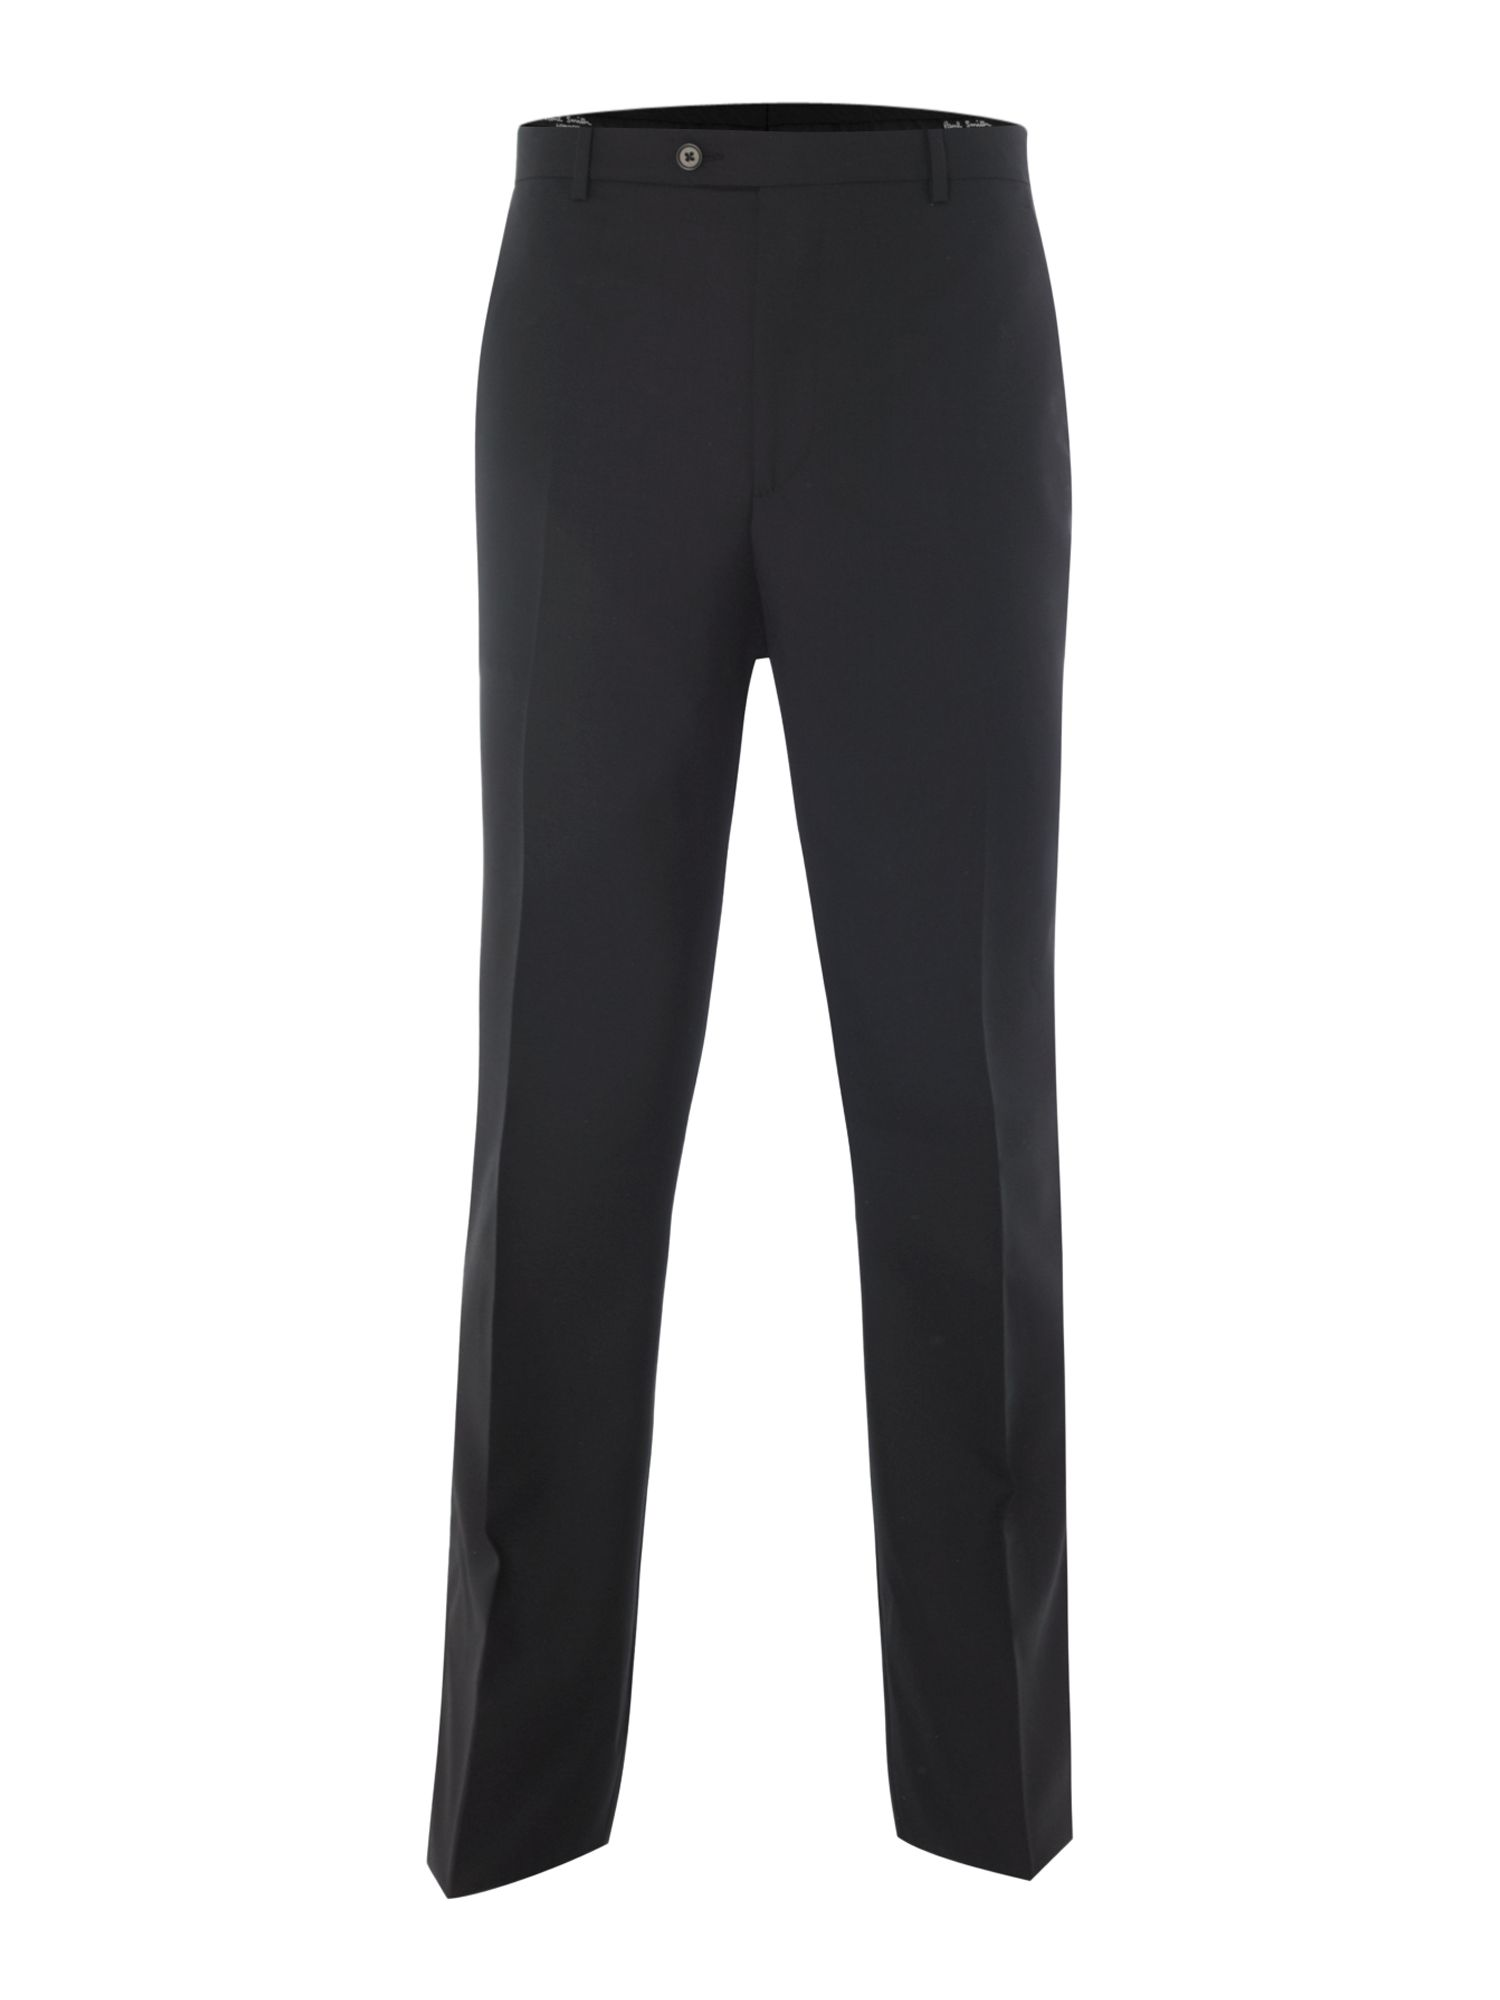 Willoughby regular fit plain wool suit trousers